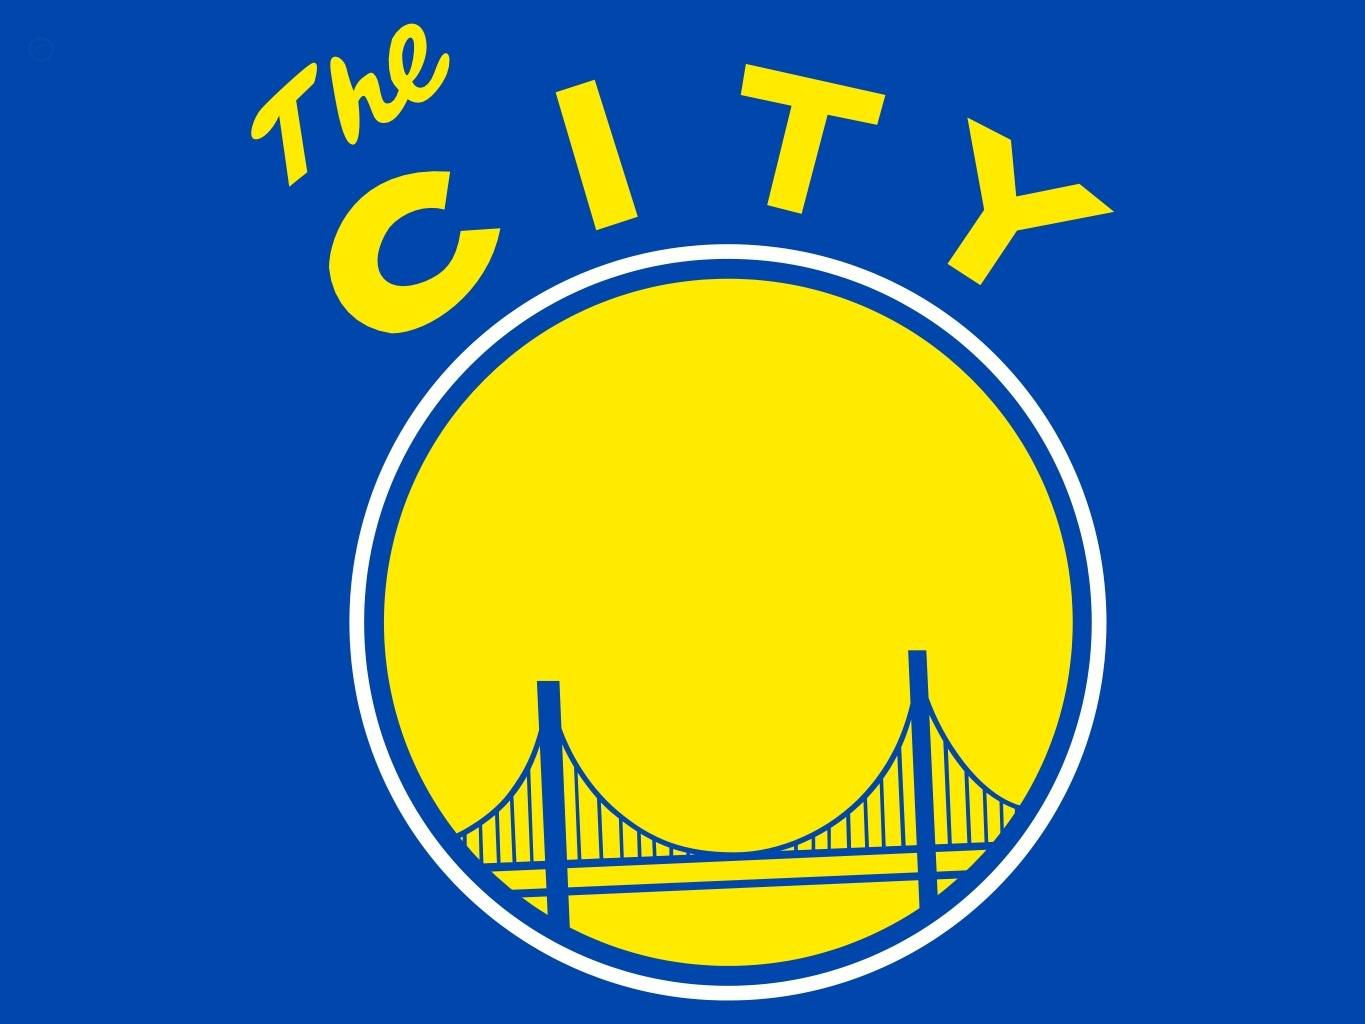 Where the Warriors fit in the messy, changing Bay Area - SBNation.com